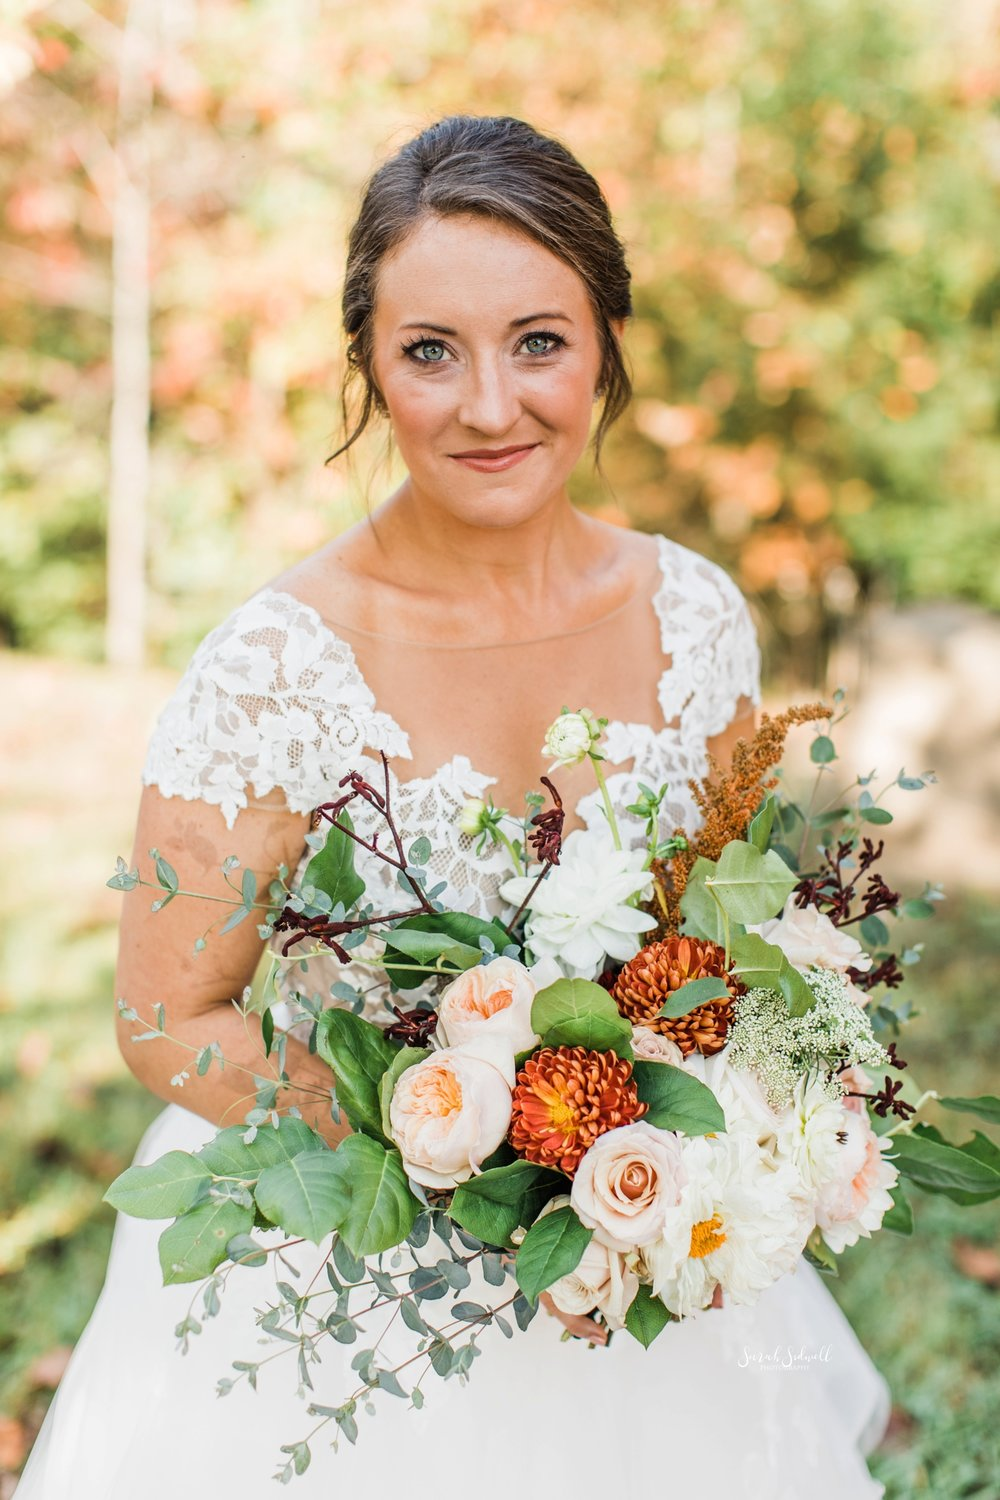 A bride holds her bouquet and smiles at the camera.